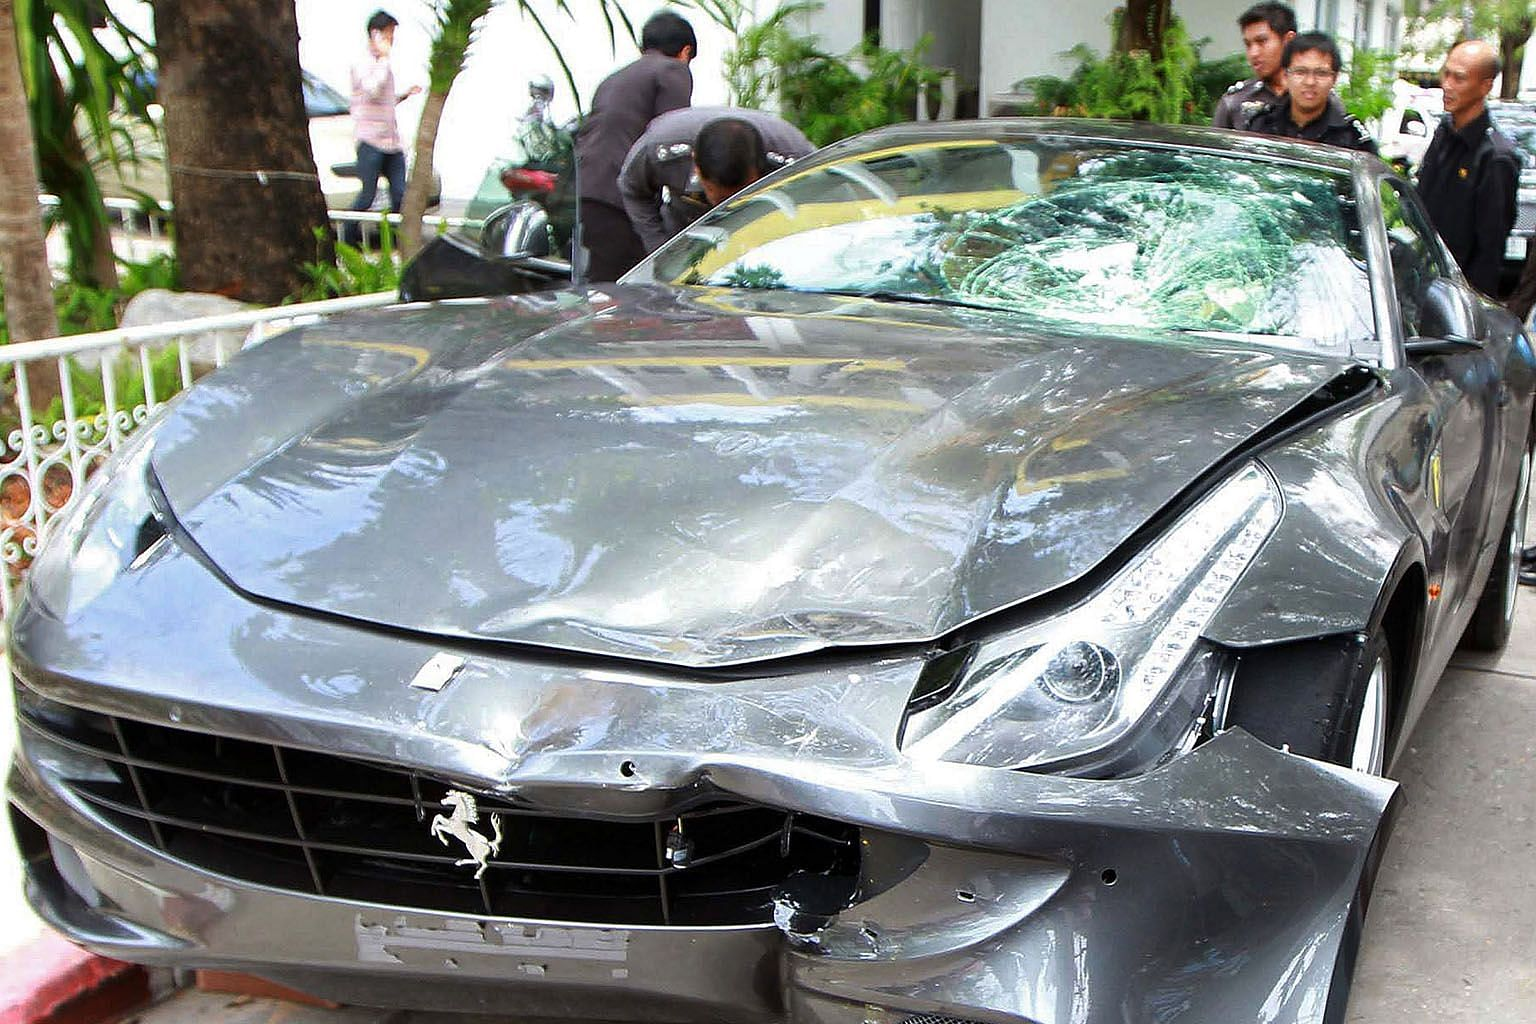 Red Bull fortune heir Vorayuth Yoovidhya (left) was accused of crashing his Ferrari into a Thai policeman, dragging his body for dozens of metres and fleeing the scene in 2012. Last month, the police said the charges against him were being dropped, b